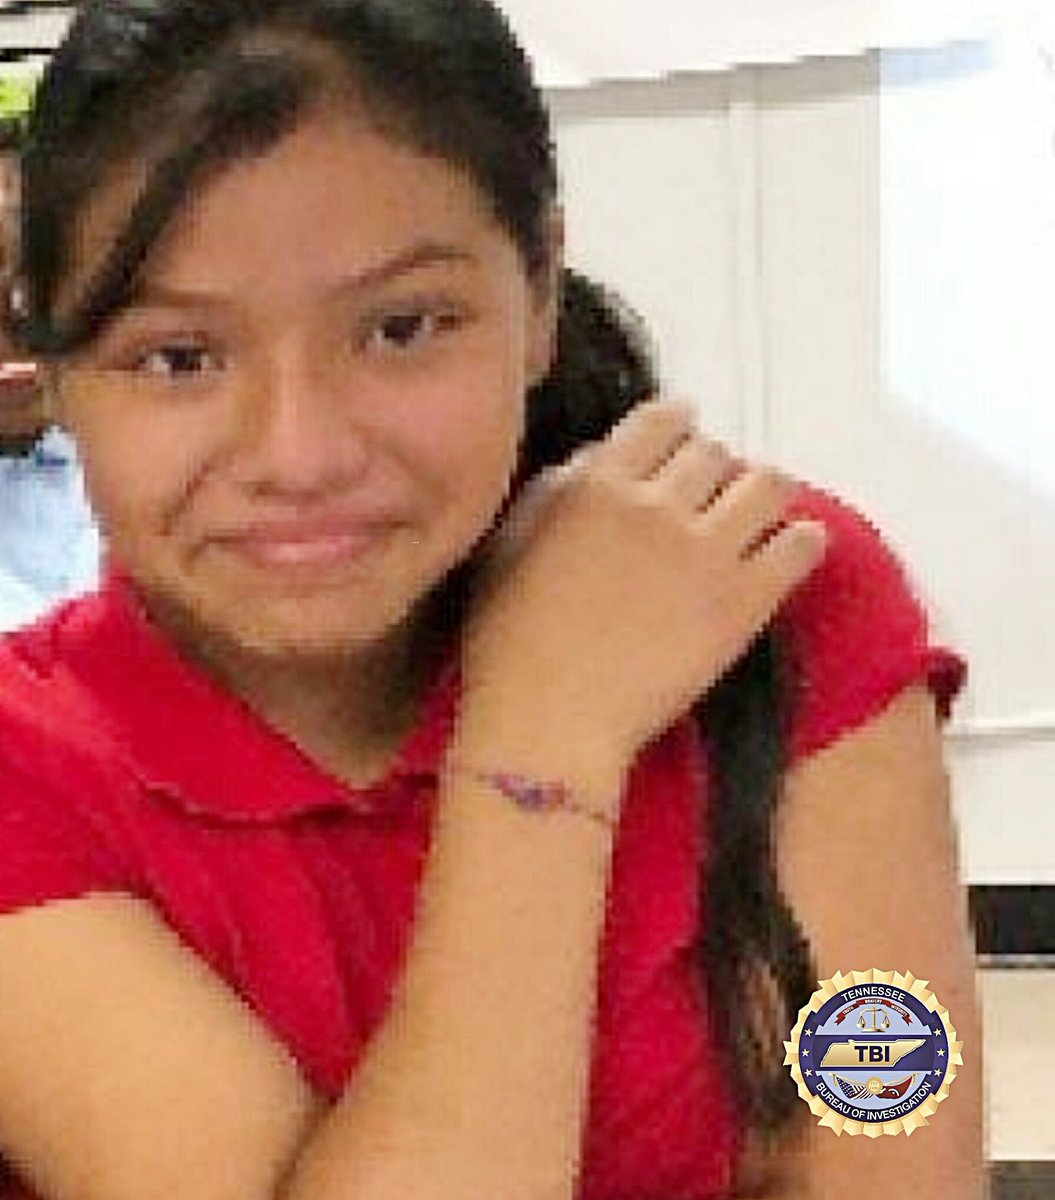 """Amber Alert: Lucy Lucas, 12 yrs old is missing from Chattanooga Tennessee. She has brown eyes & black hair.  4'8"""" & weighs 120 lbs.  Please call if you see her at 1-800-TBI-FIND or 911.  #TNAMBERAlert #AmberAlert #Tennessee<br>http://pic.twitter.com/K2m5bV5ZEm"""